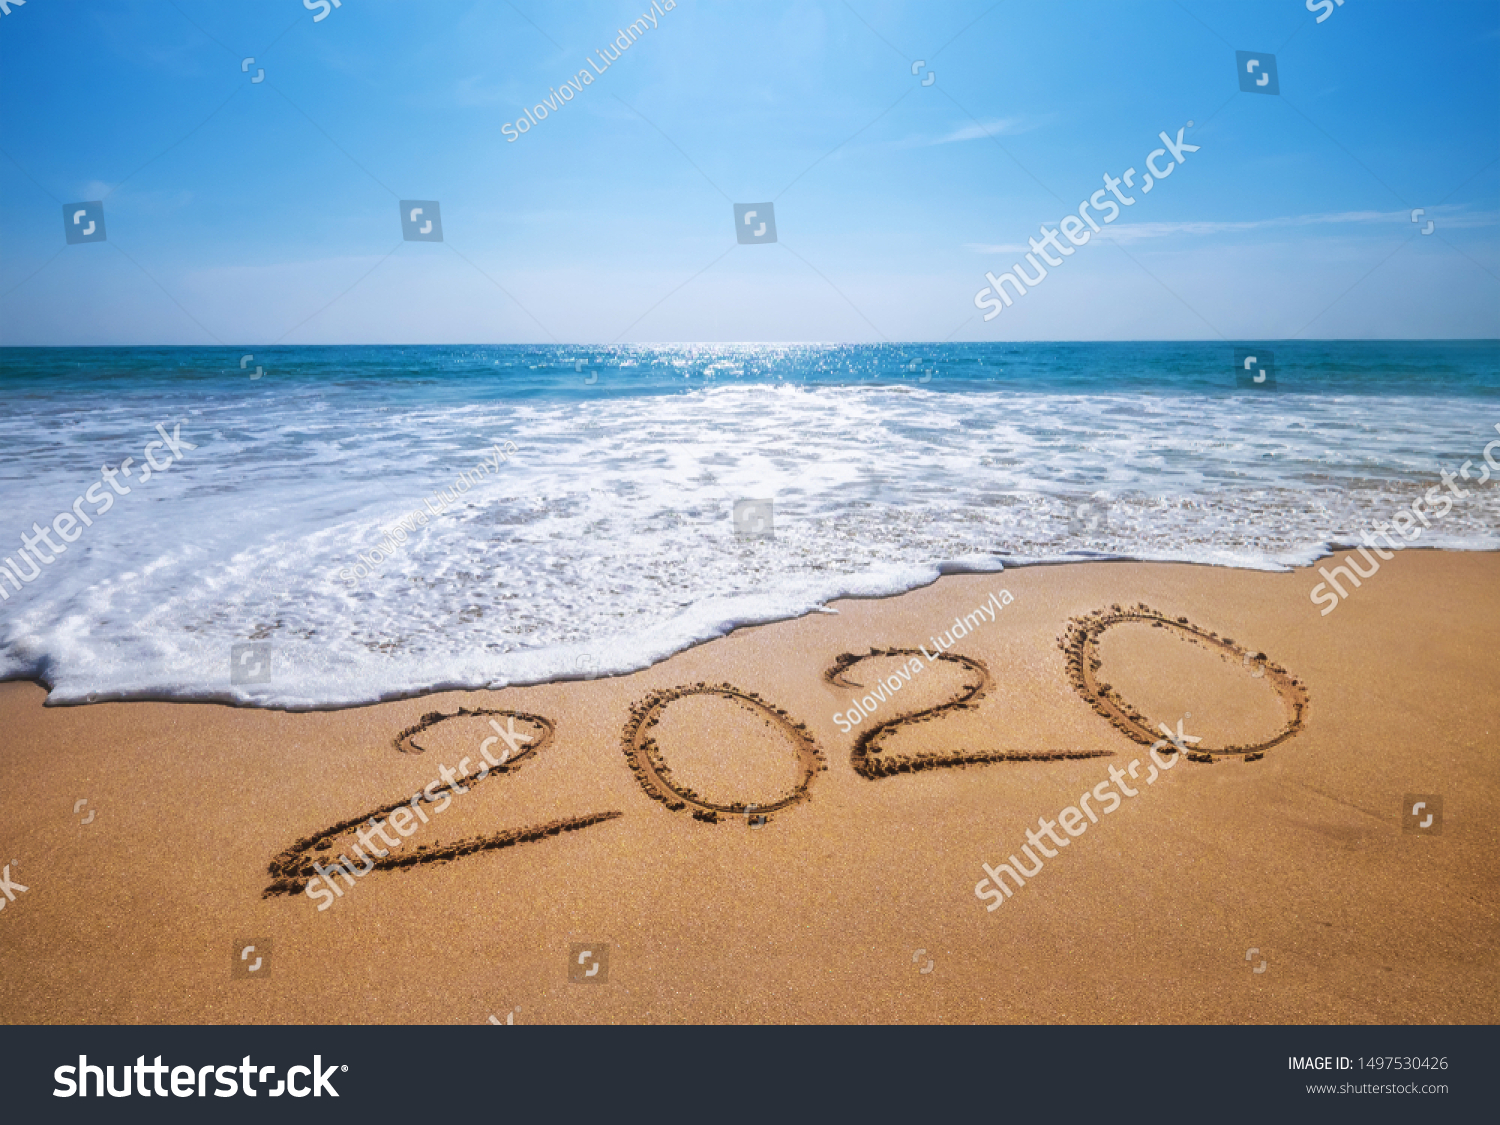 Happy New Year 2020 is coming concept sandy tropical ocean beach lettering. Exotic New Year celebration concept image. #1497530426